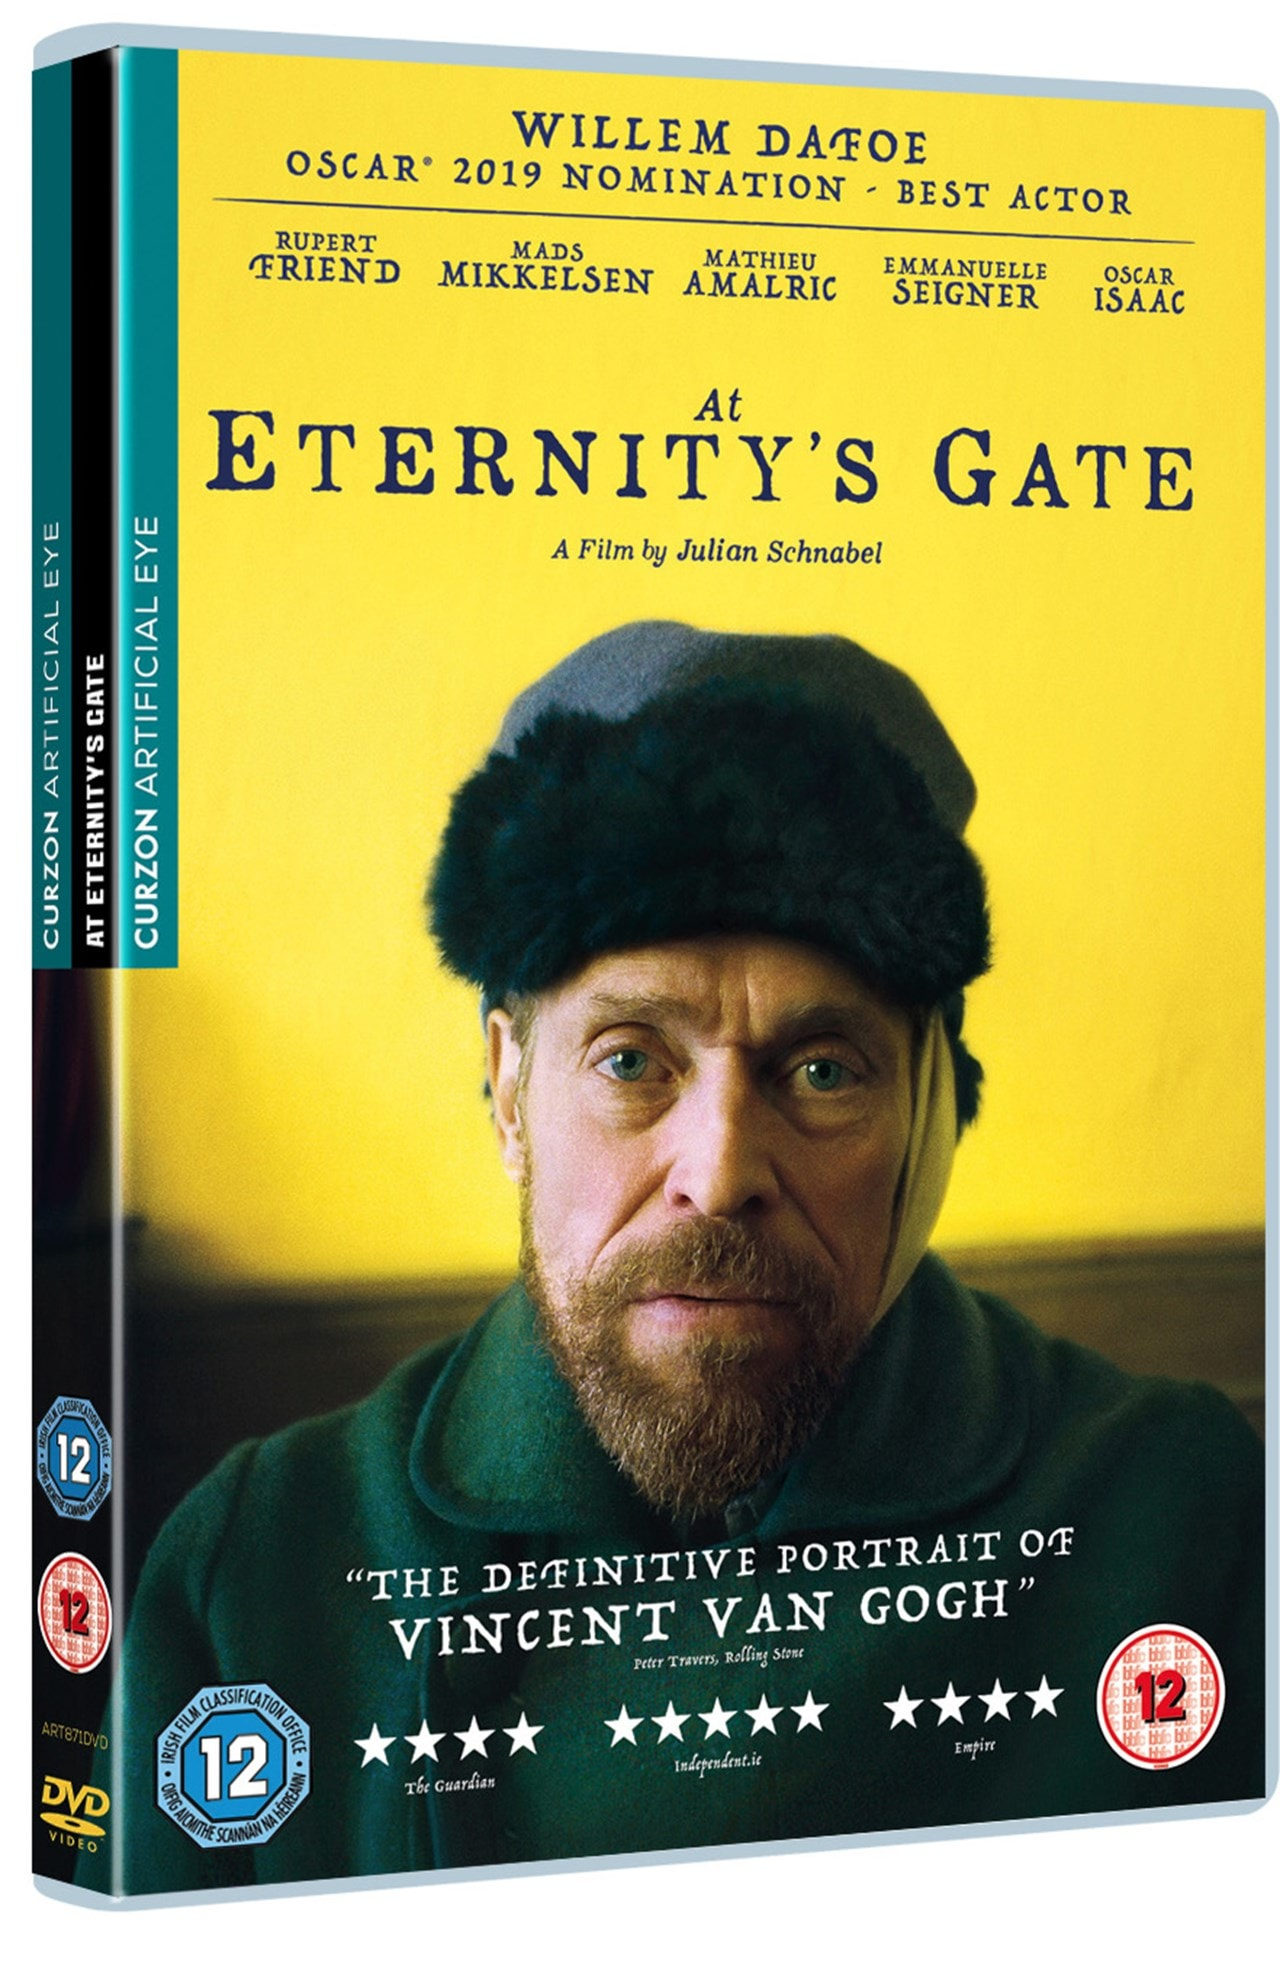 At Eternity's Gate - 2